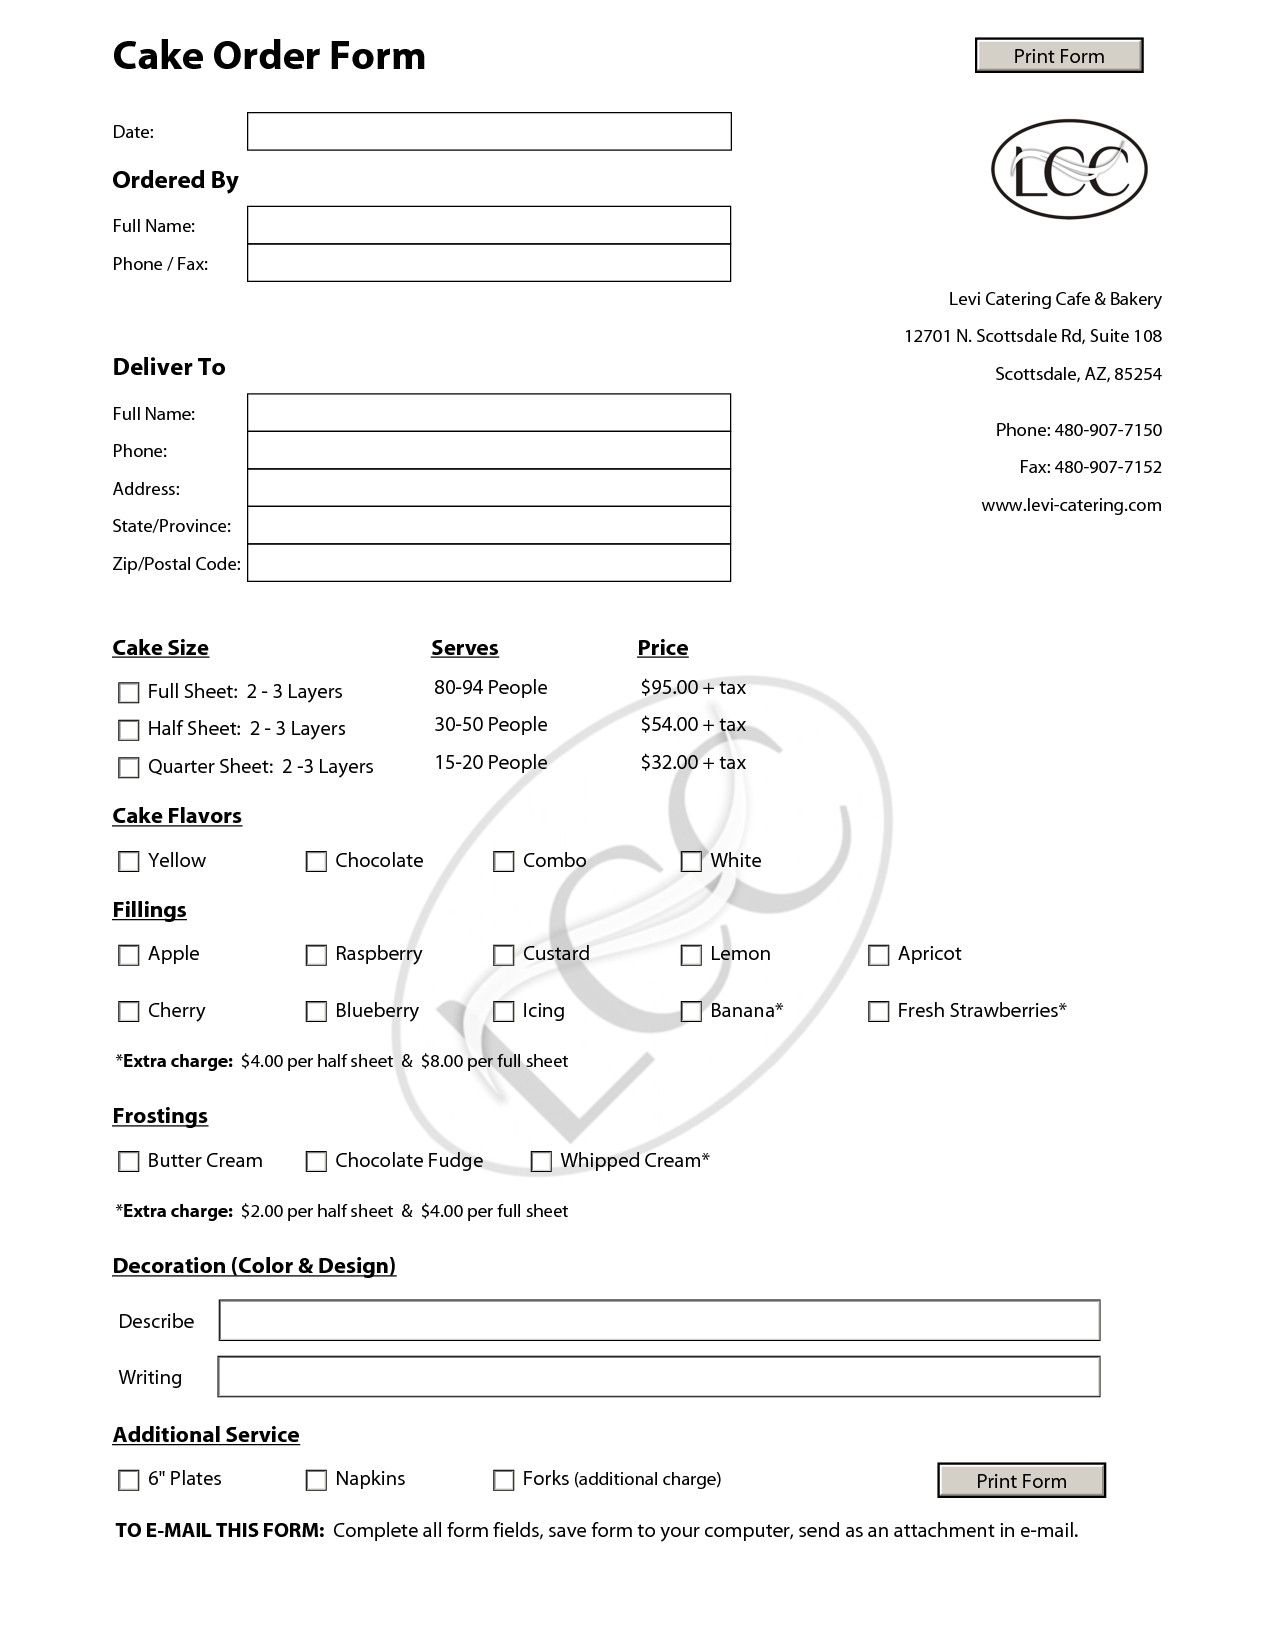 Cake order form Templates Cake order forms On Pinterest